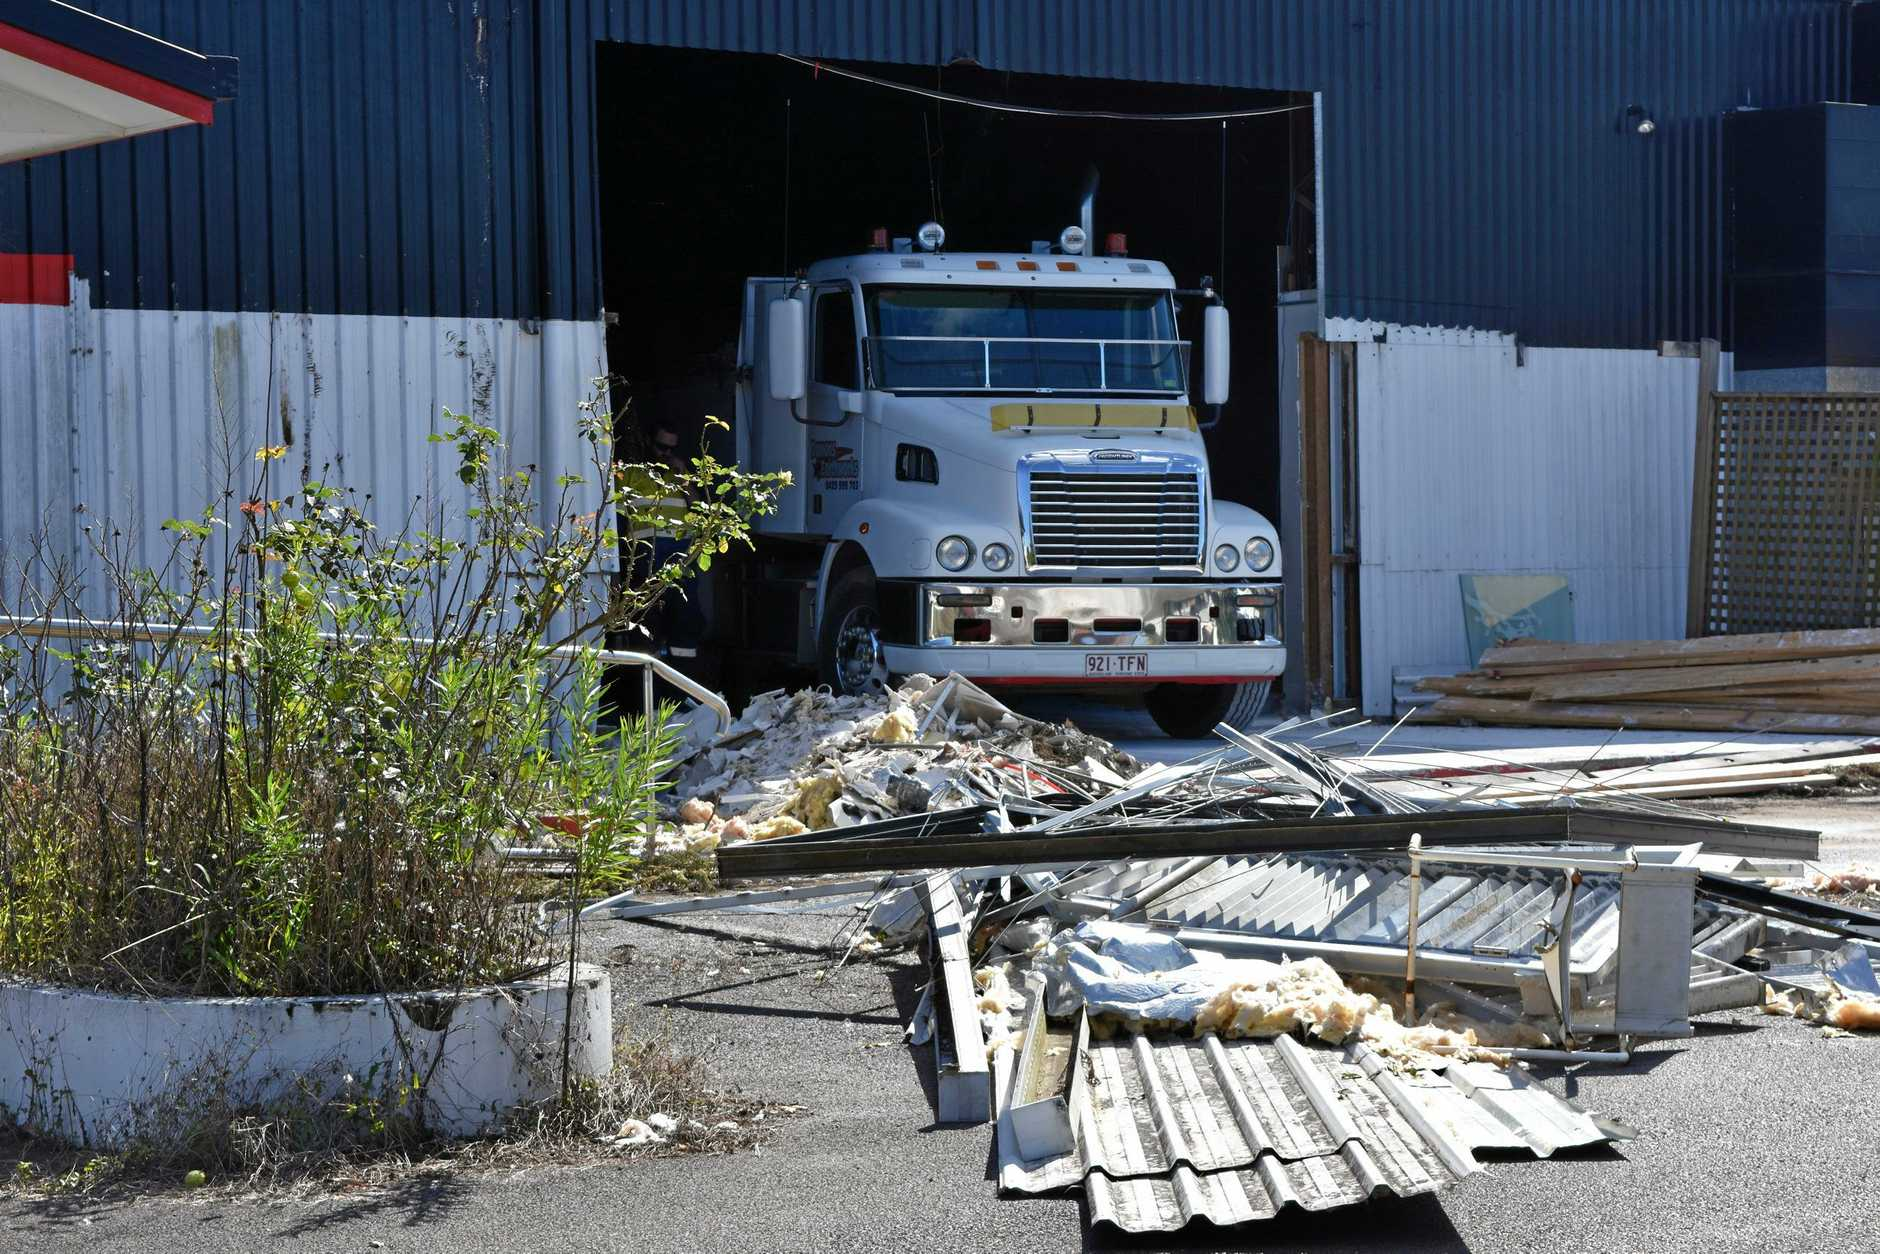 A tipper truck and excavator were operating inside the former Skillcentred building yesterday.